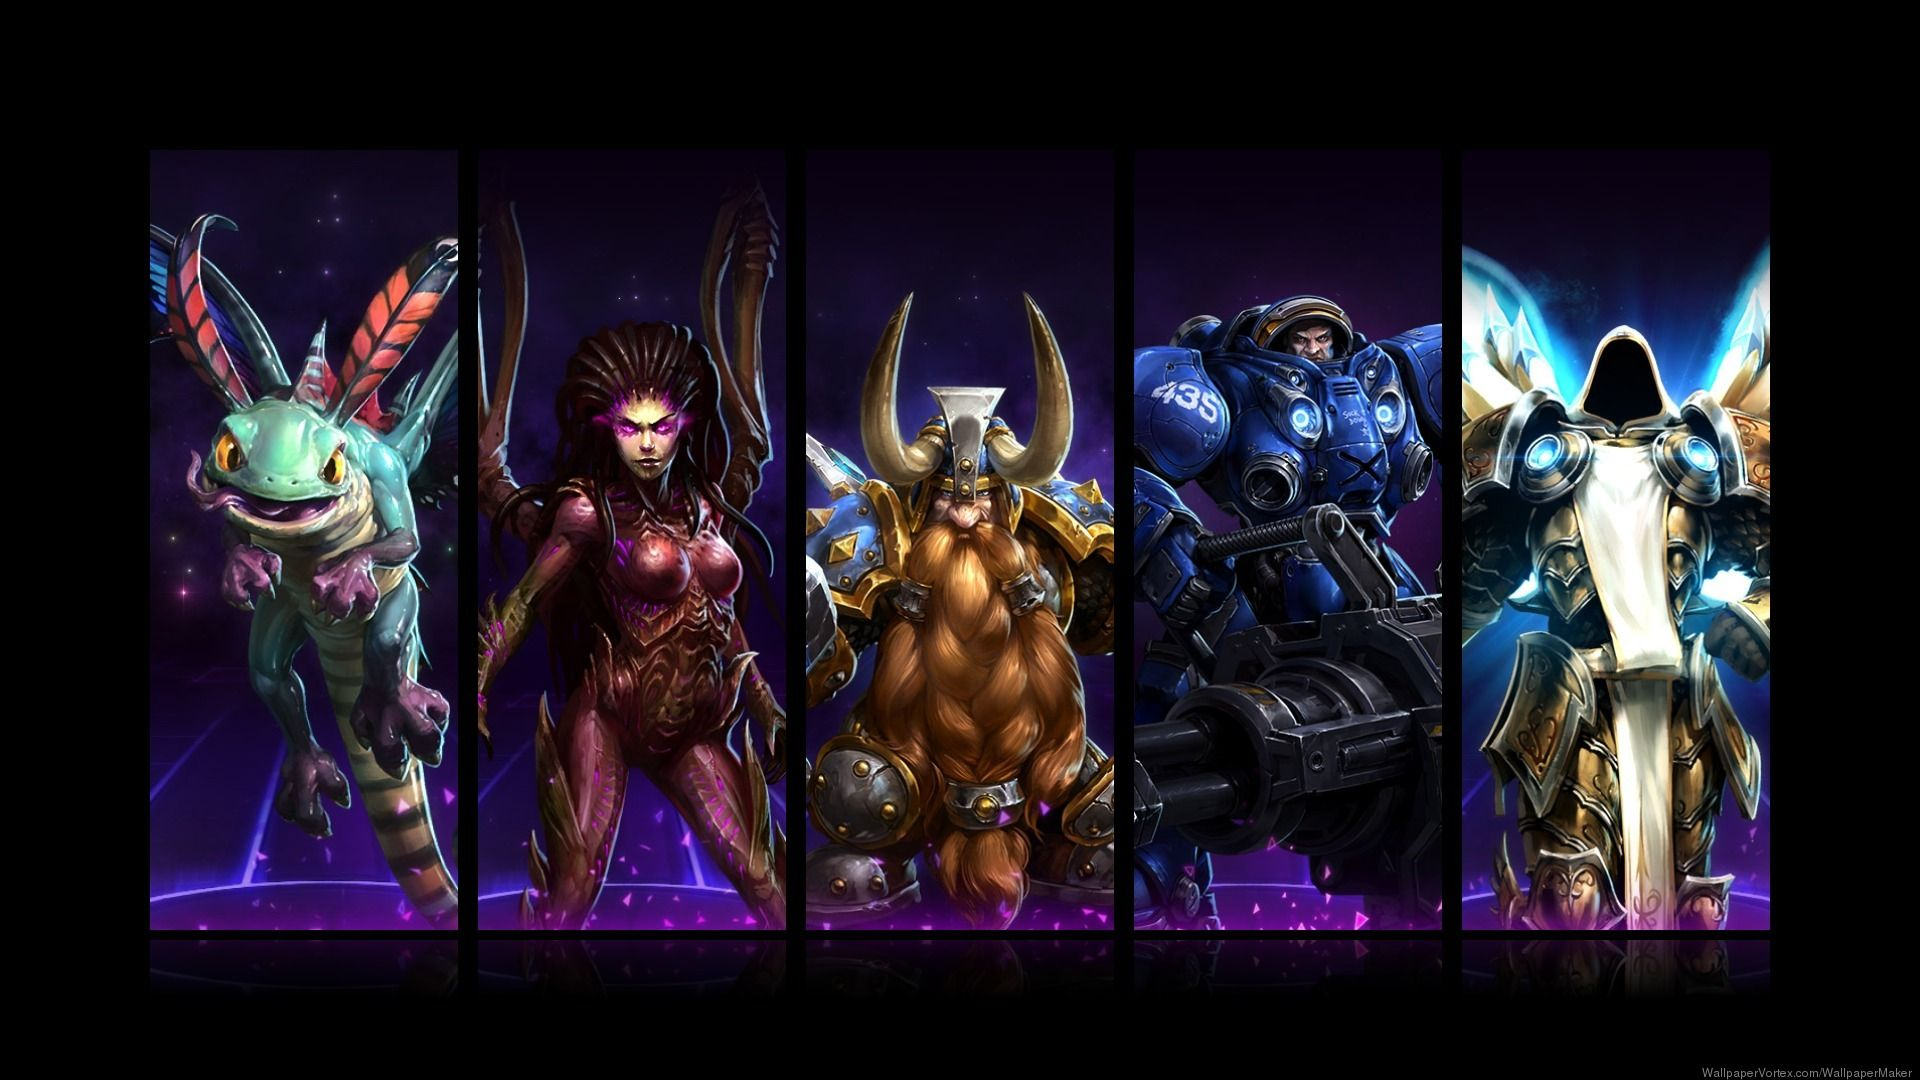 Heroes Of The Storm Wallpaper Storm Wallpaper Heroes Of The